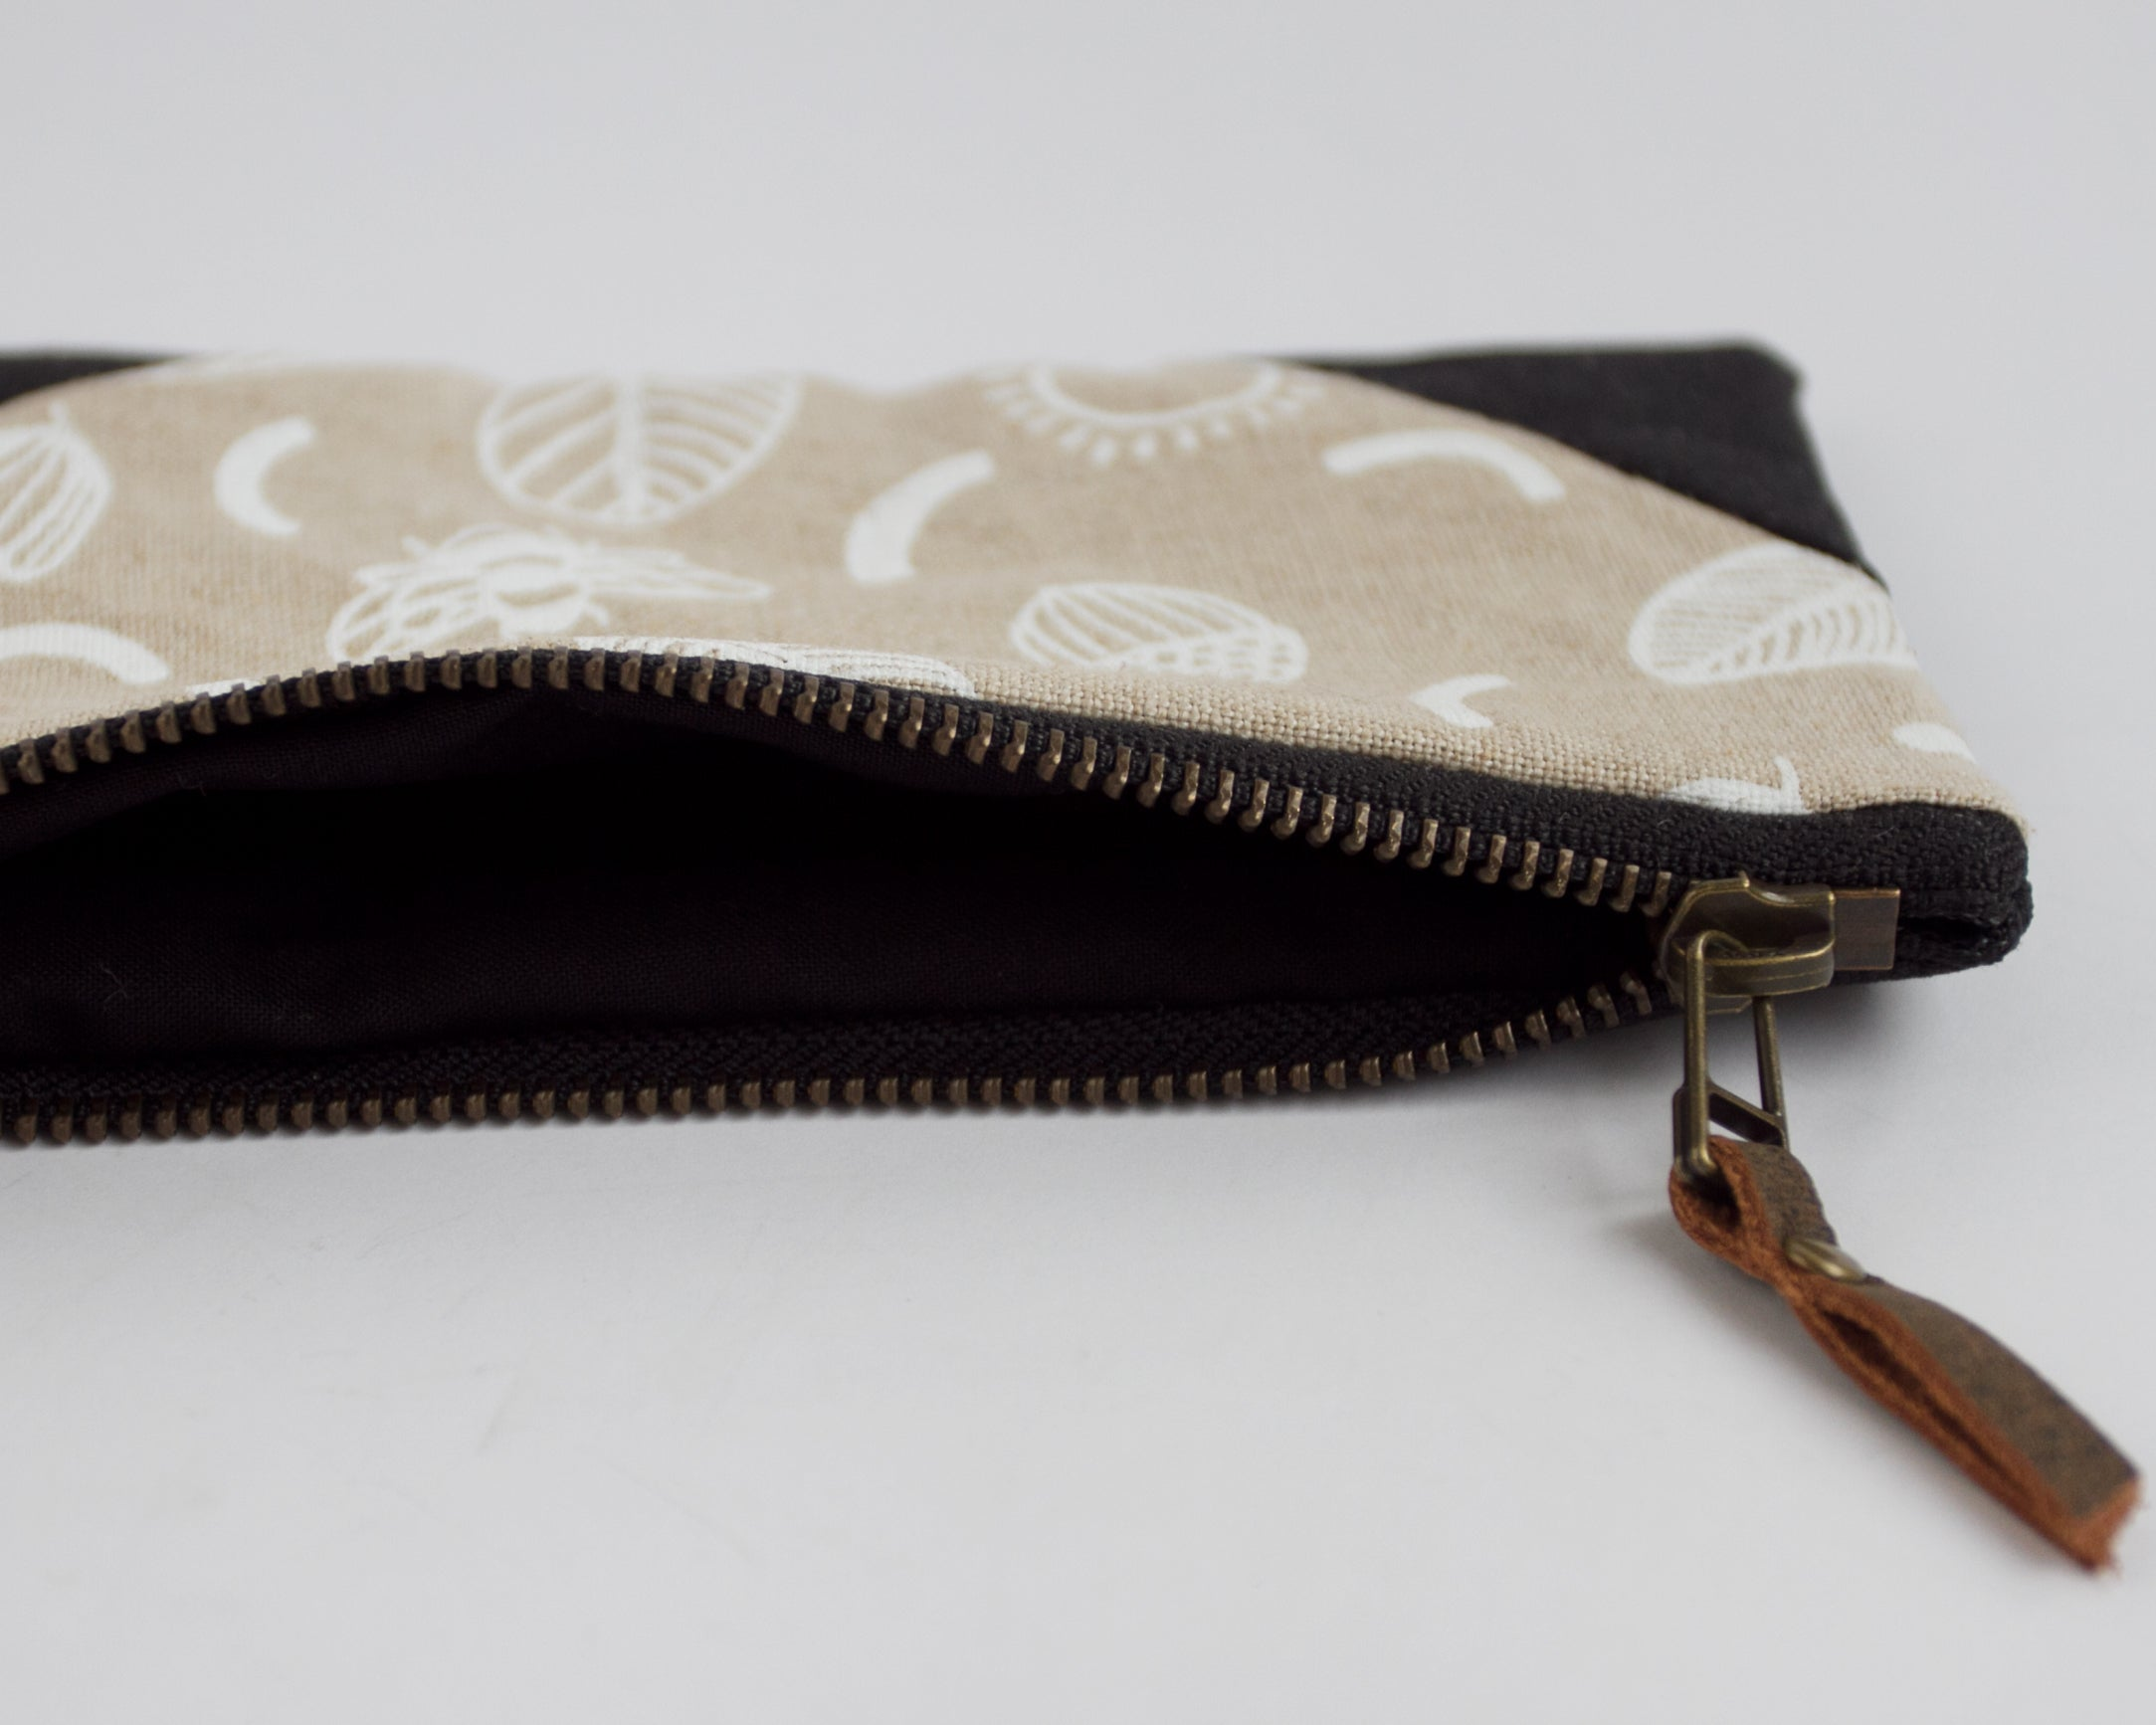 Small Double-Zipper Pouch - Sunny Day (black and white)